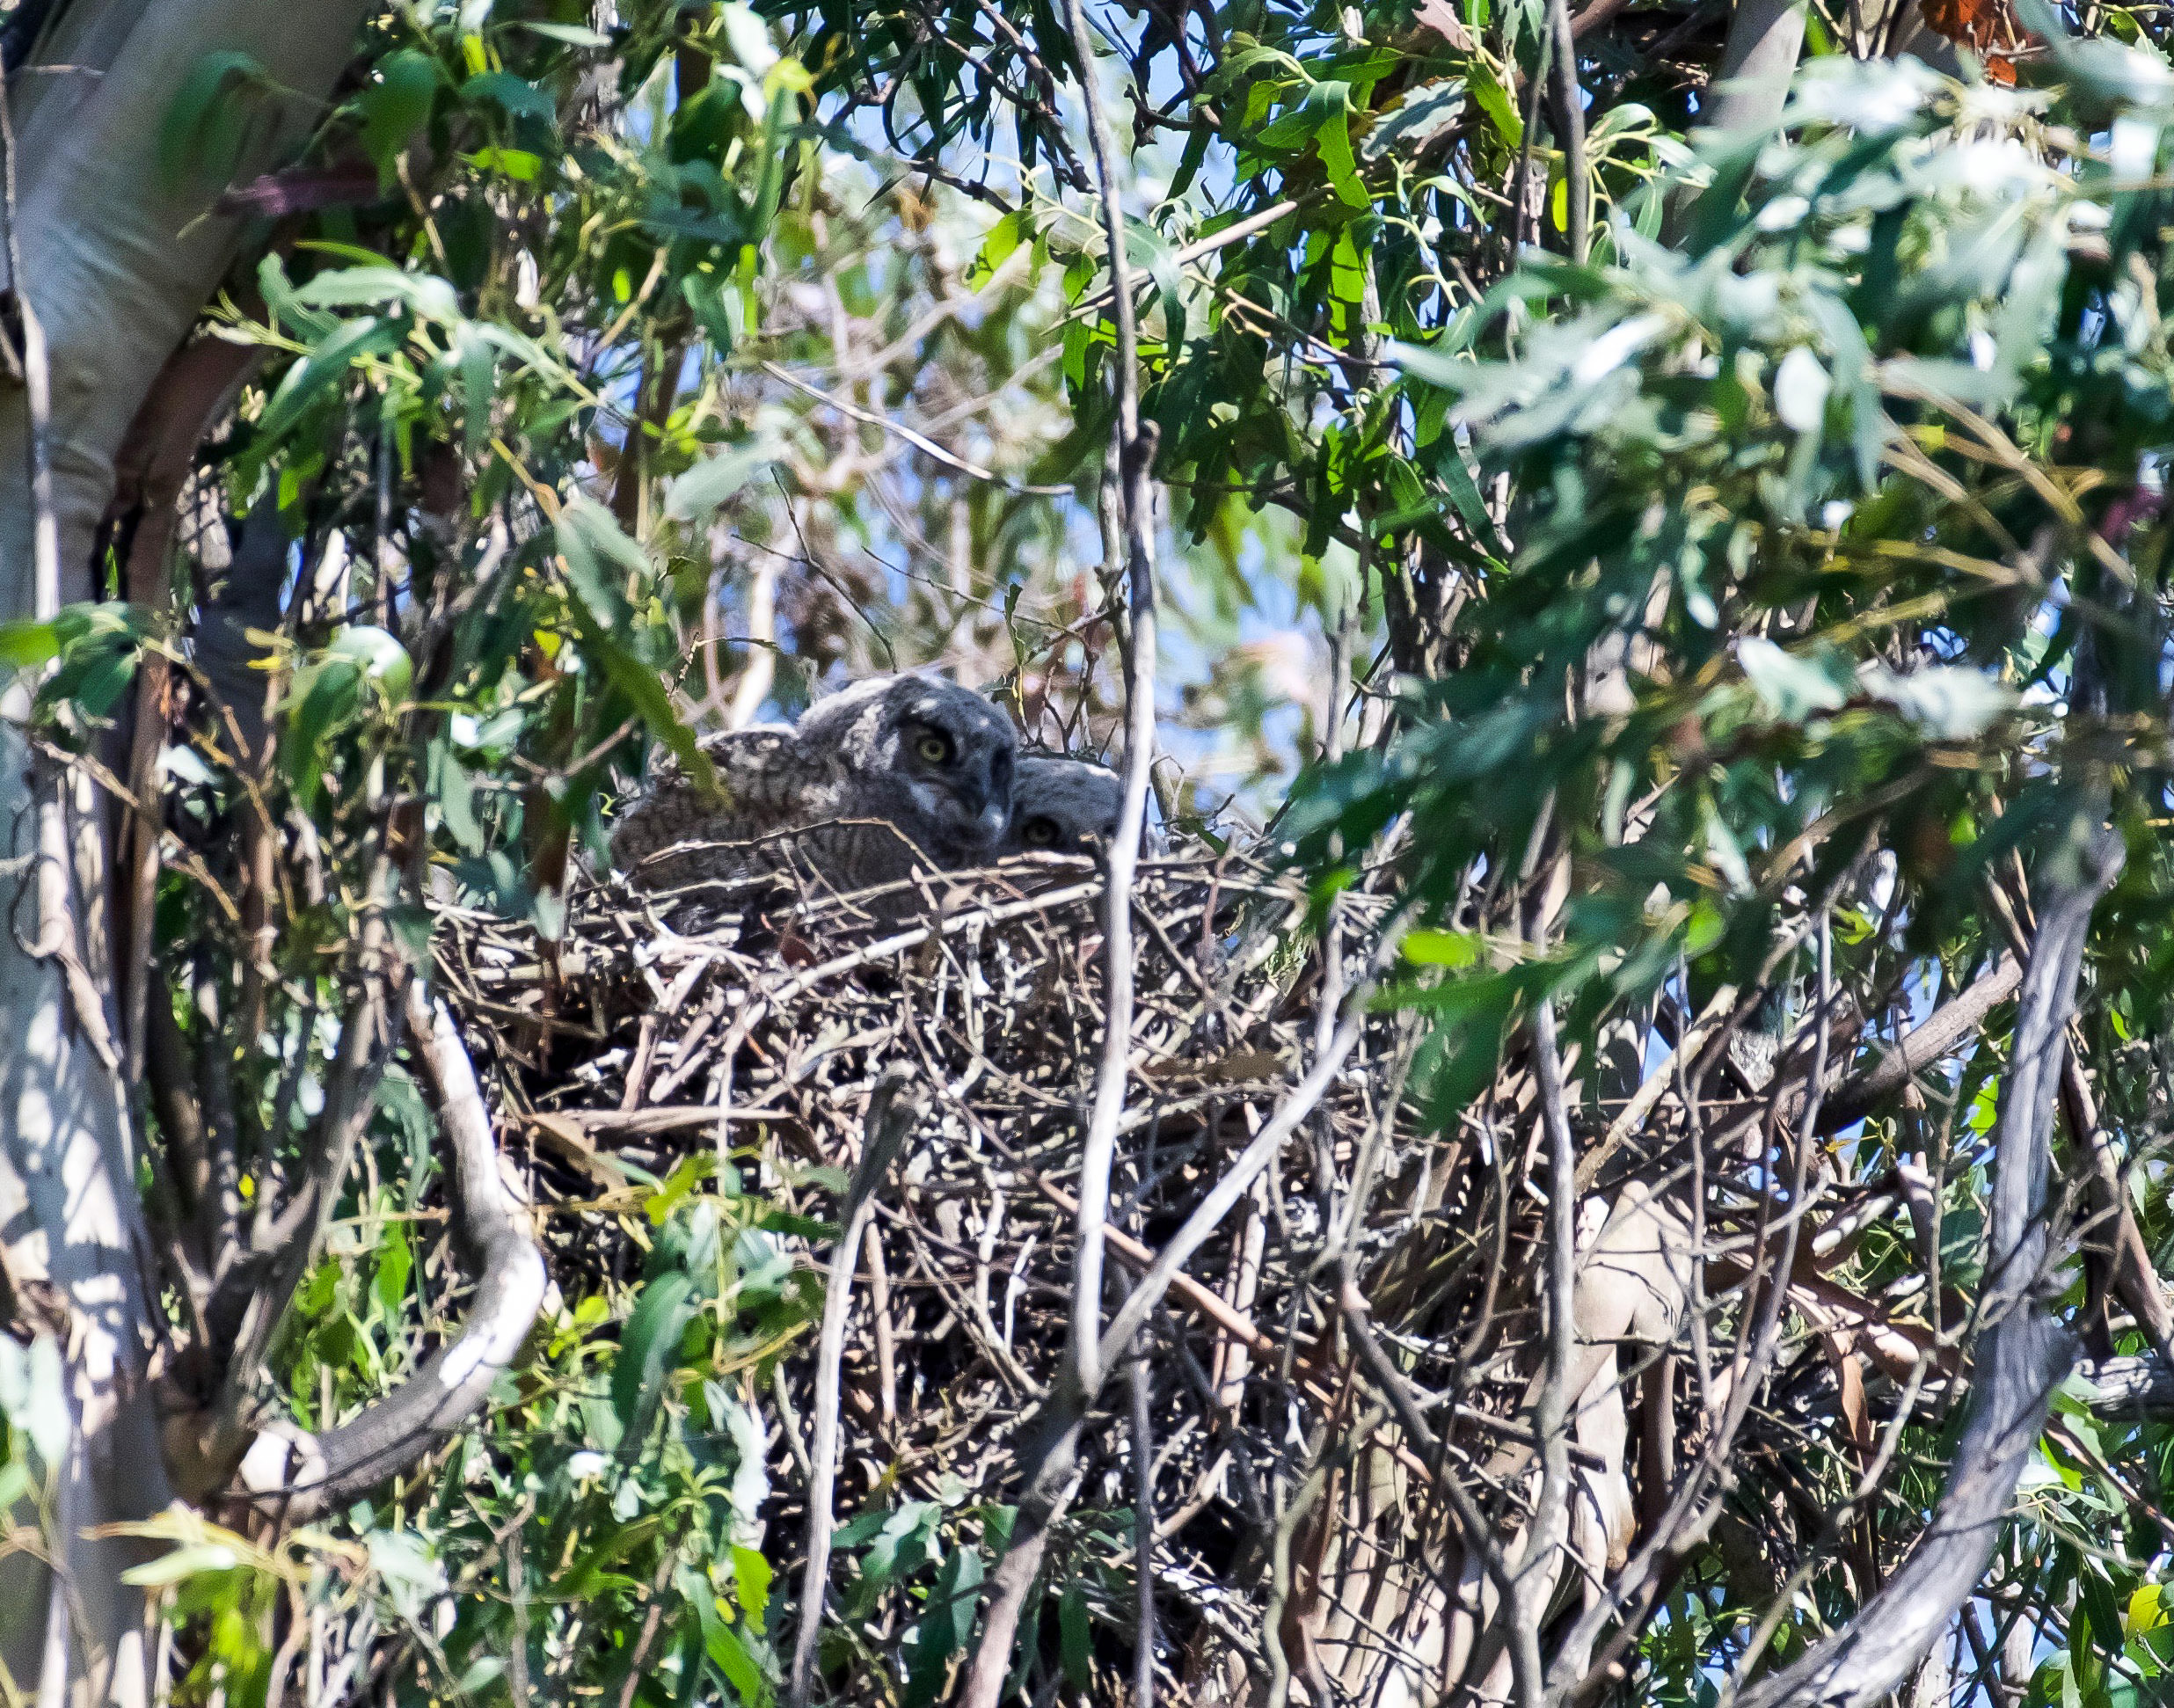 Two fledgling great horned owls in their nest waiting for food to be delivered by their parents